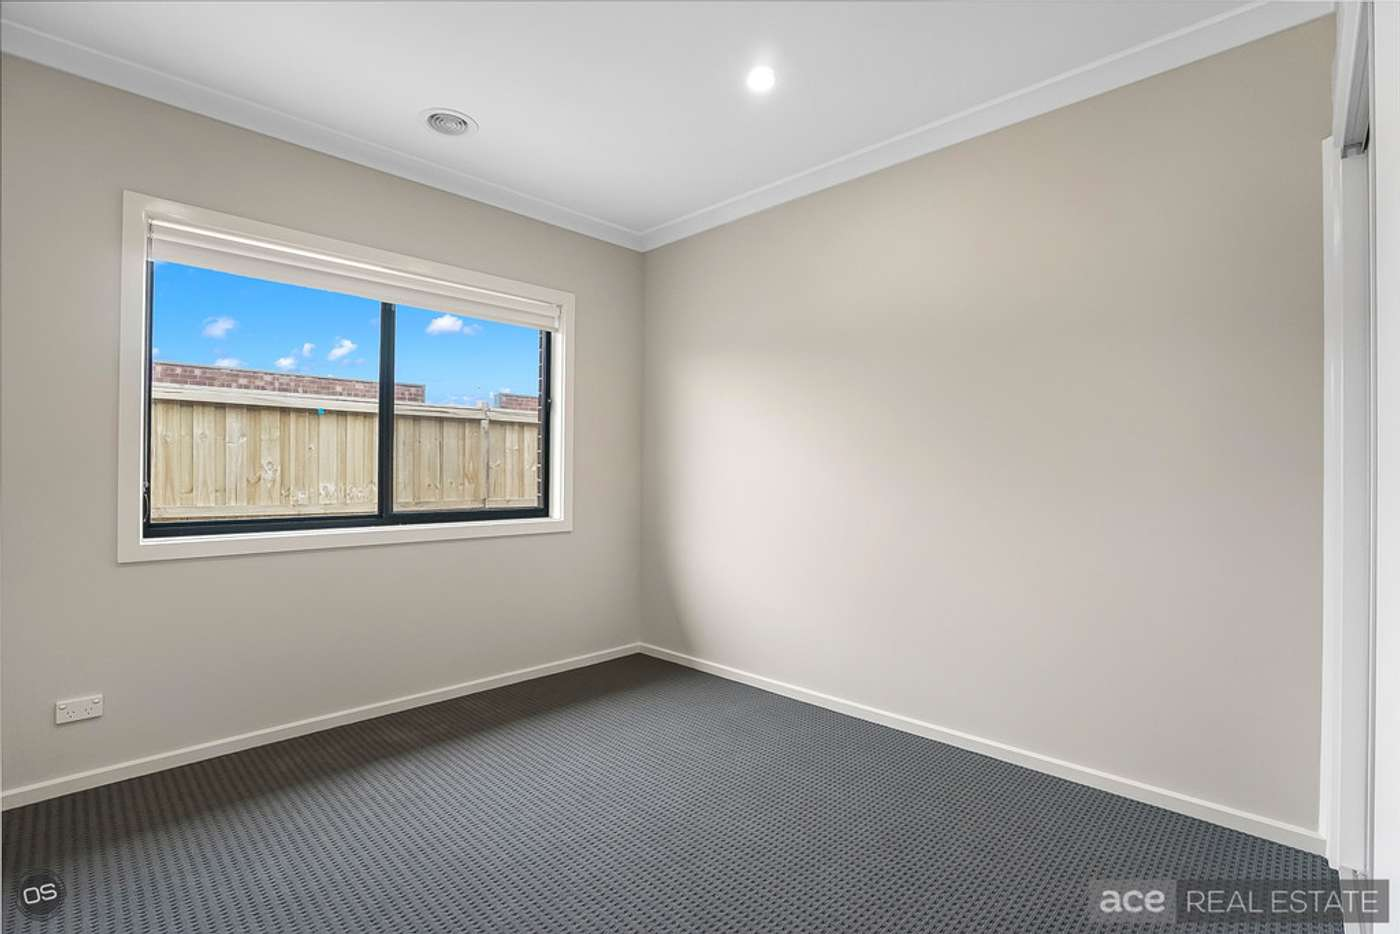 Seventh view of Homely house listing, 35 Grima Crescent, Wyndham Vale VIC 3024